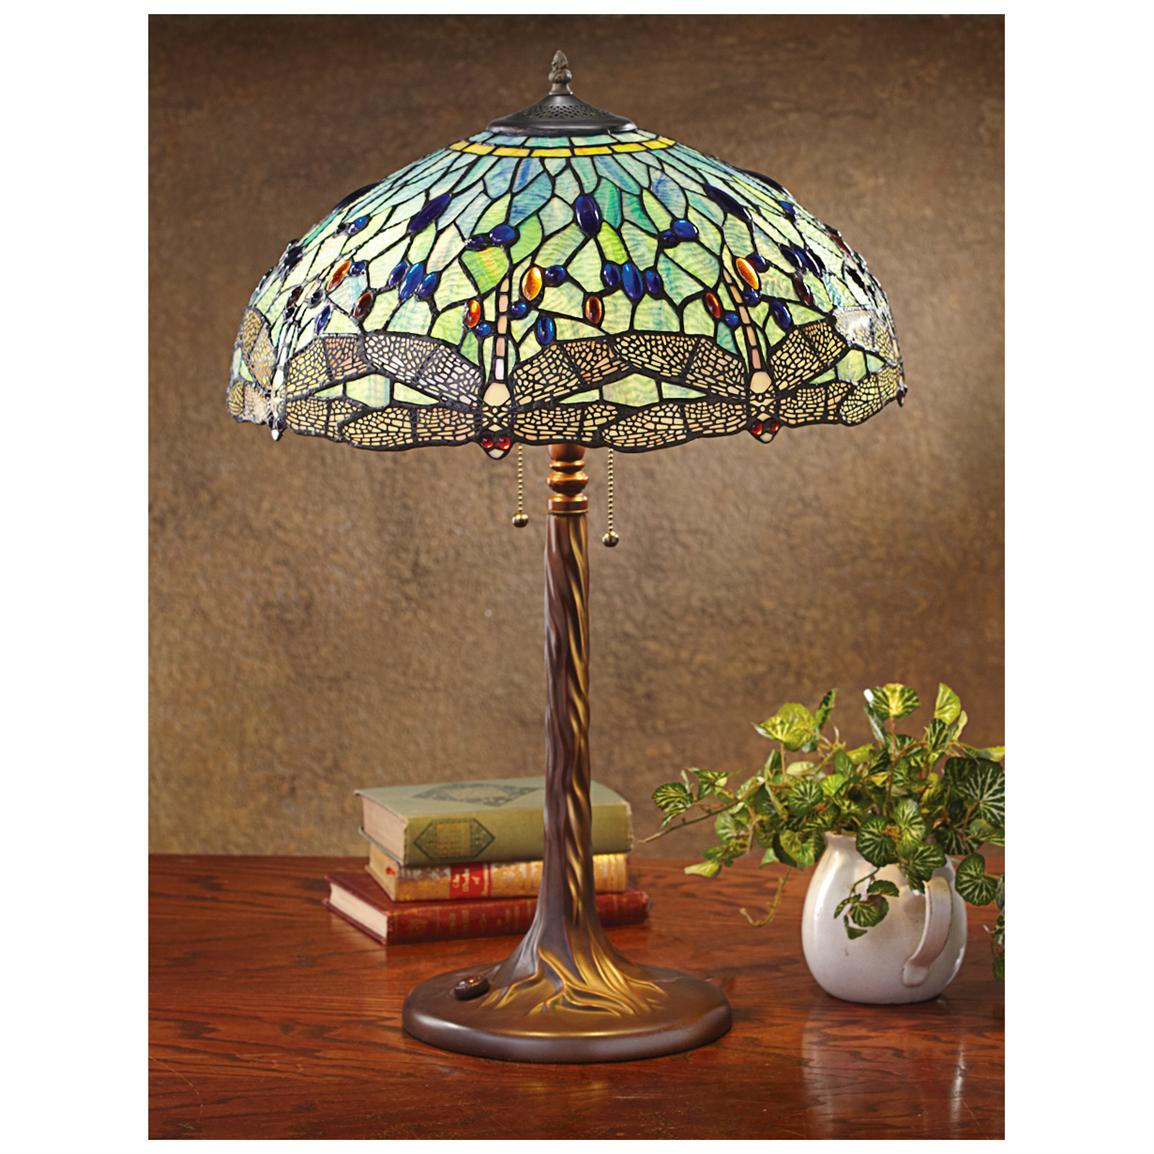 Tiffany style dragonfly table lamp – Dragonfly Desk Lamp